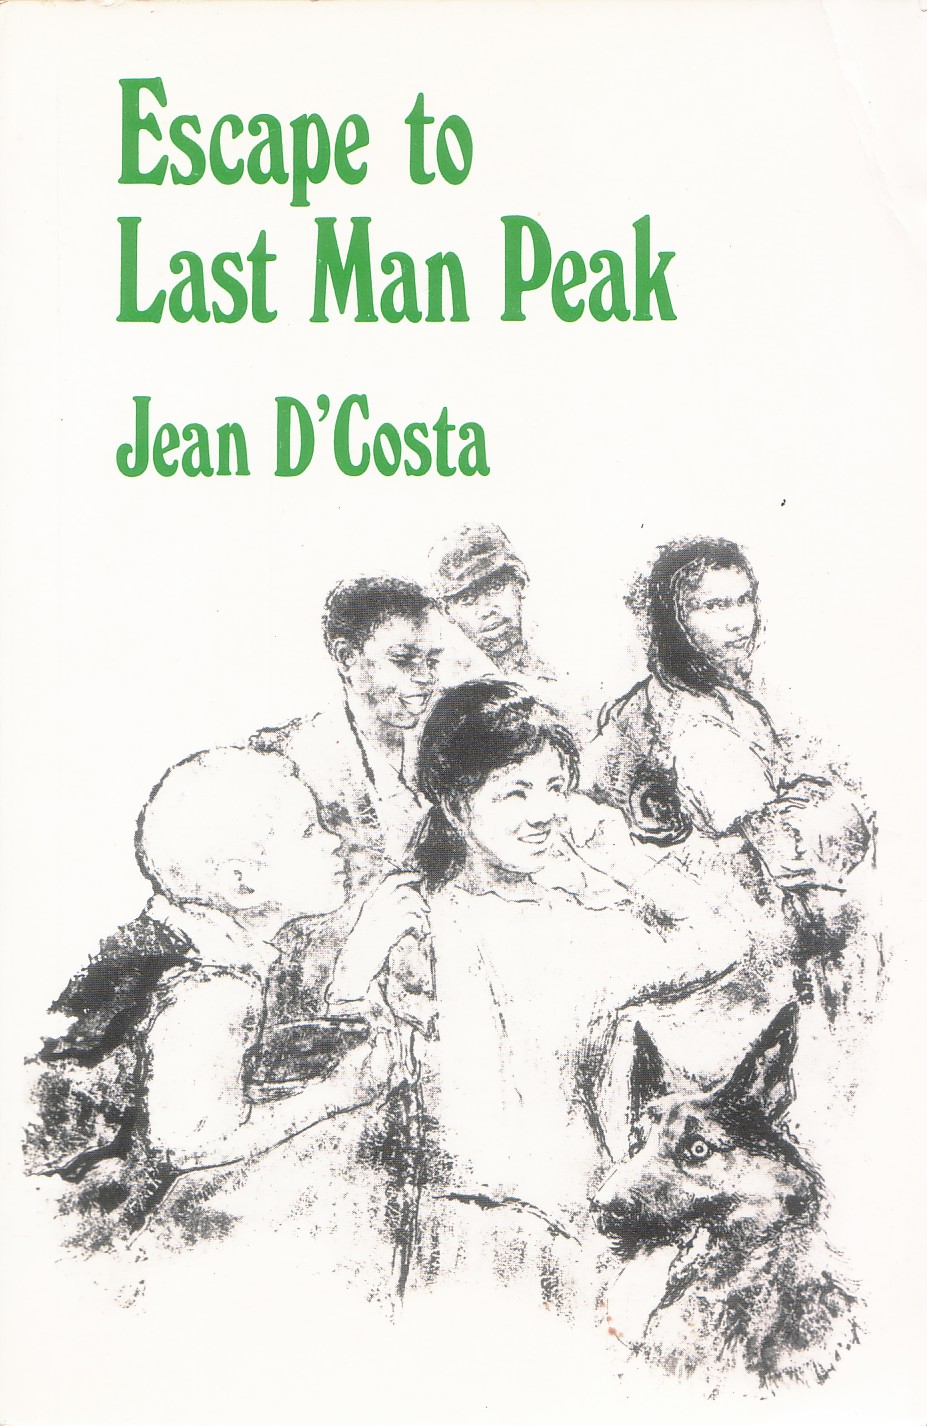 ESCAPE TO LAST MAN PEAK - Text by Jean D'CostaIllustrations by Imre Hofbauer